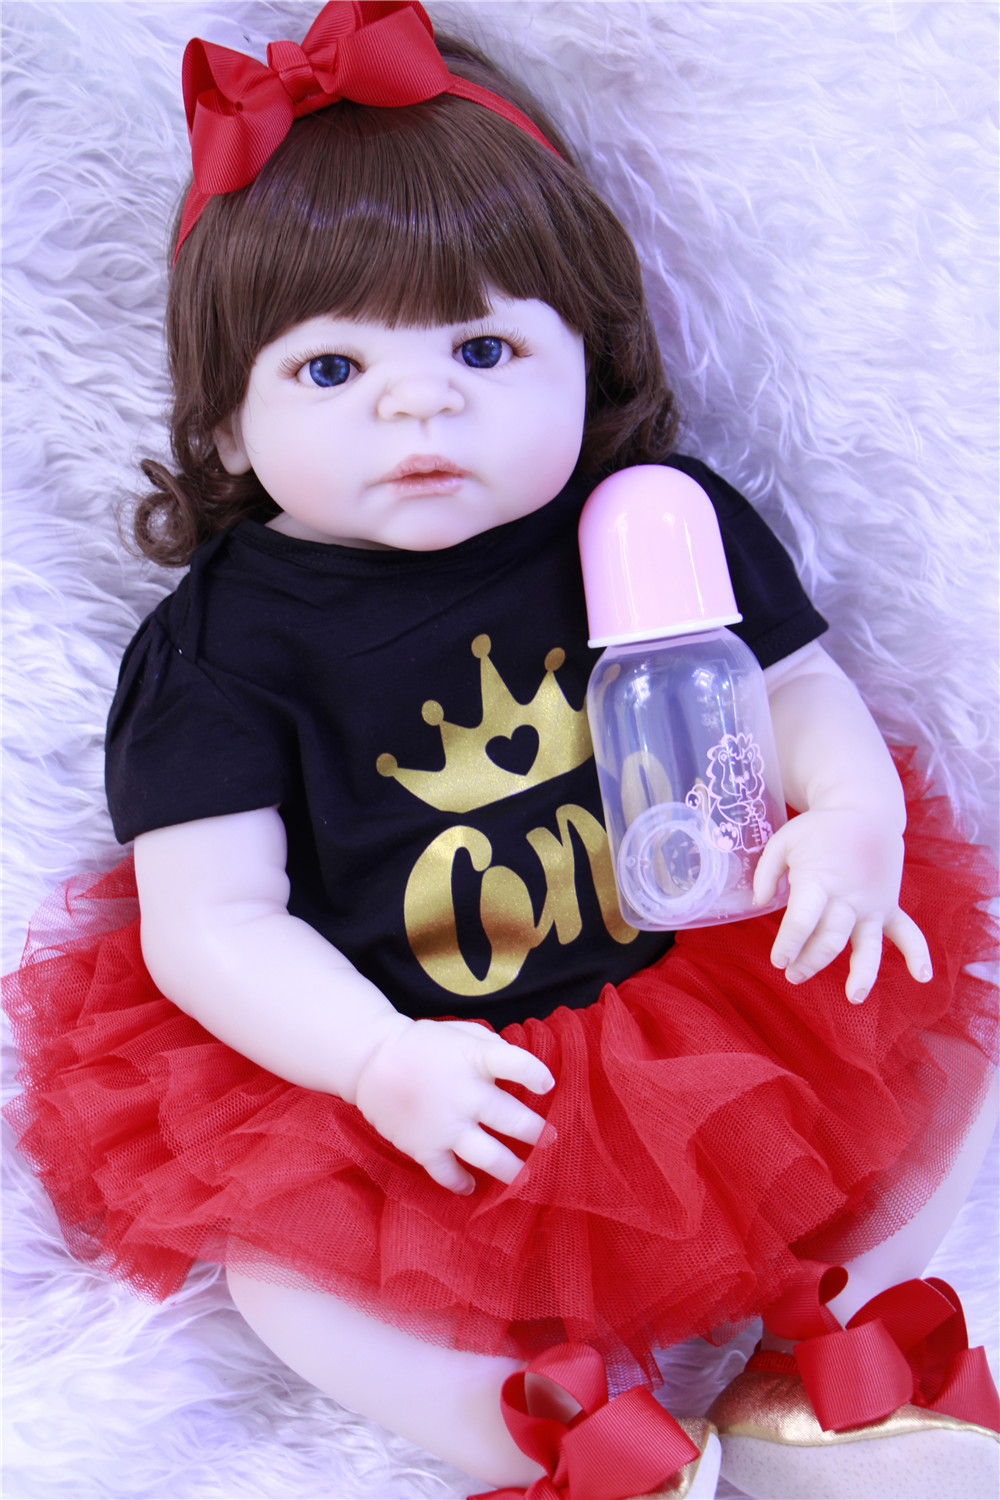 23 Reborn dolls full body silicone reborn babies red dress curly hair realistic girl alive bebe